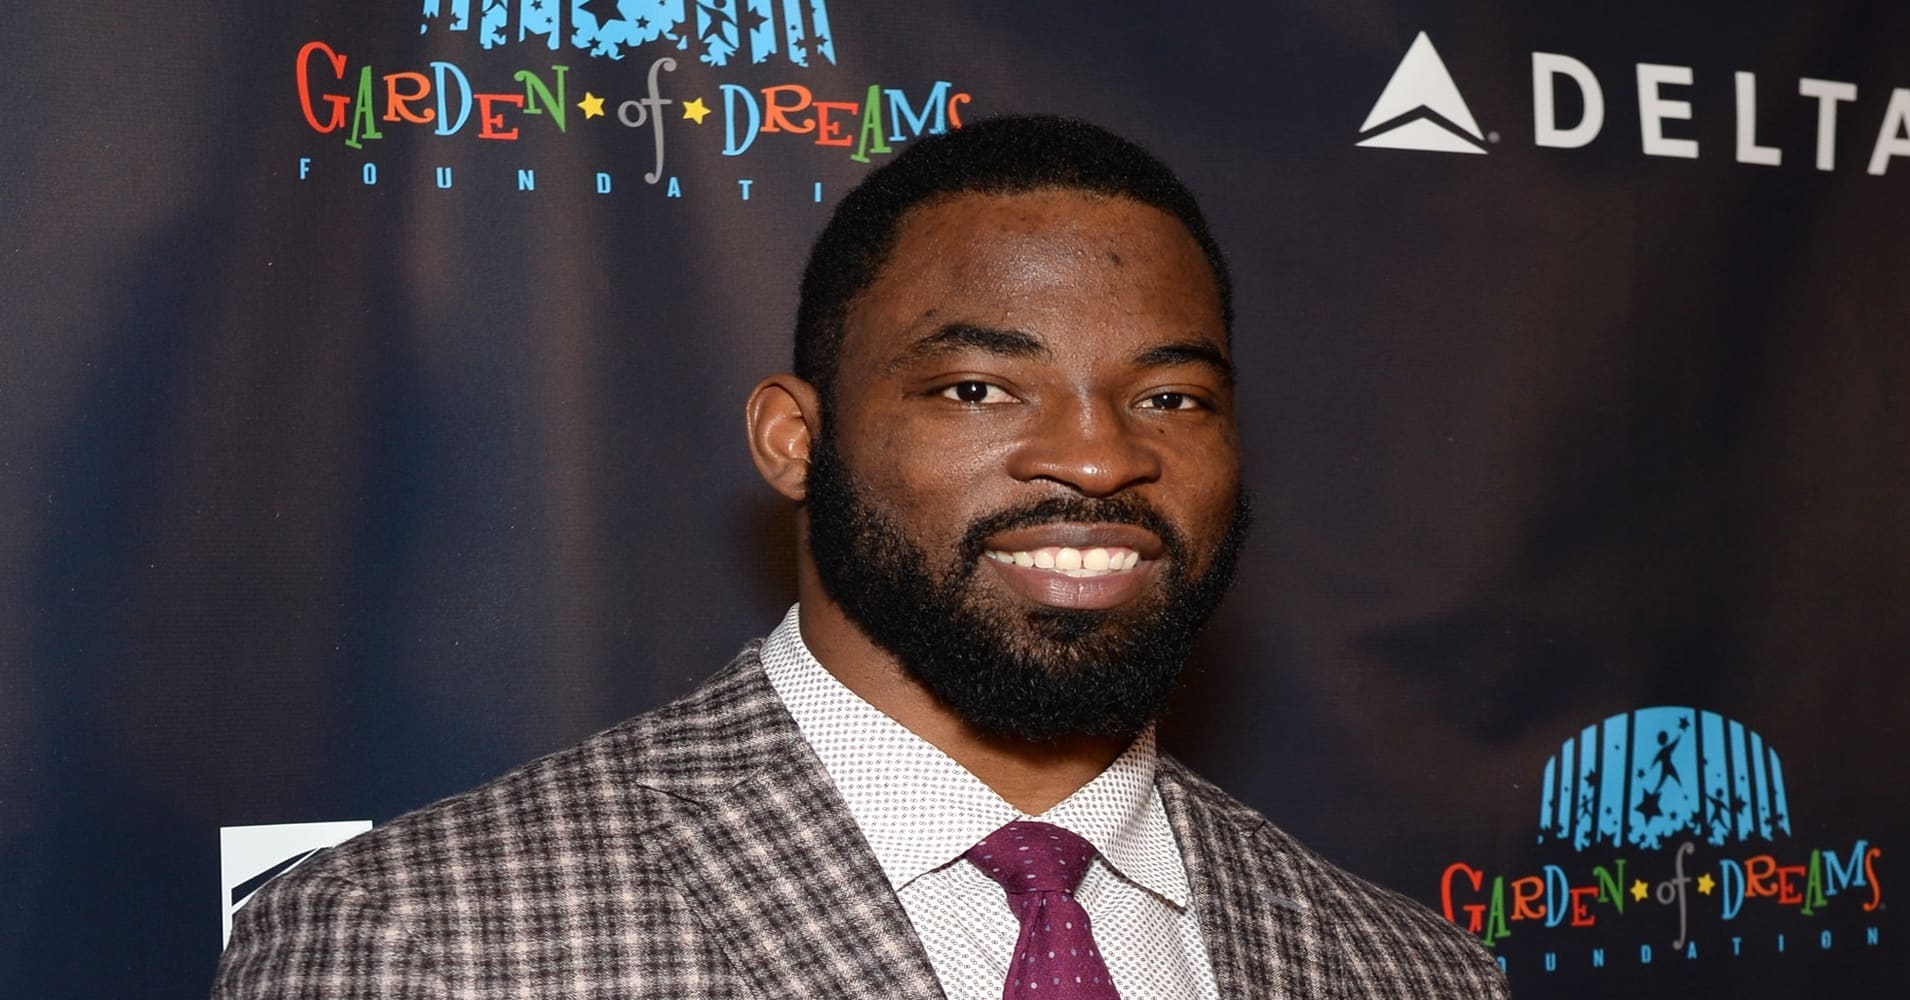 NEW YORK, NY - MARCH 28: Justin Tuck attends the 2017 Garden of Laughs at Madison Square Garden on March 28, 2017 in New York City.